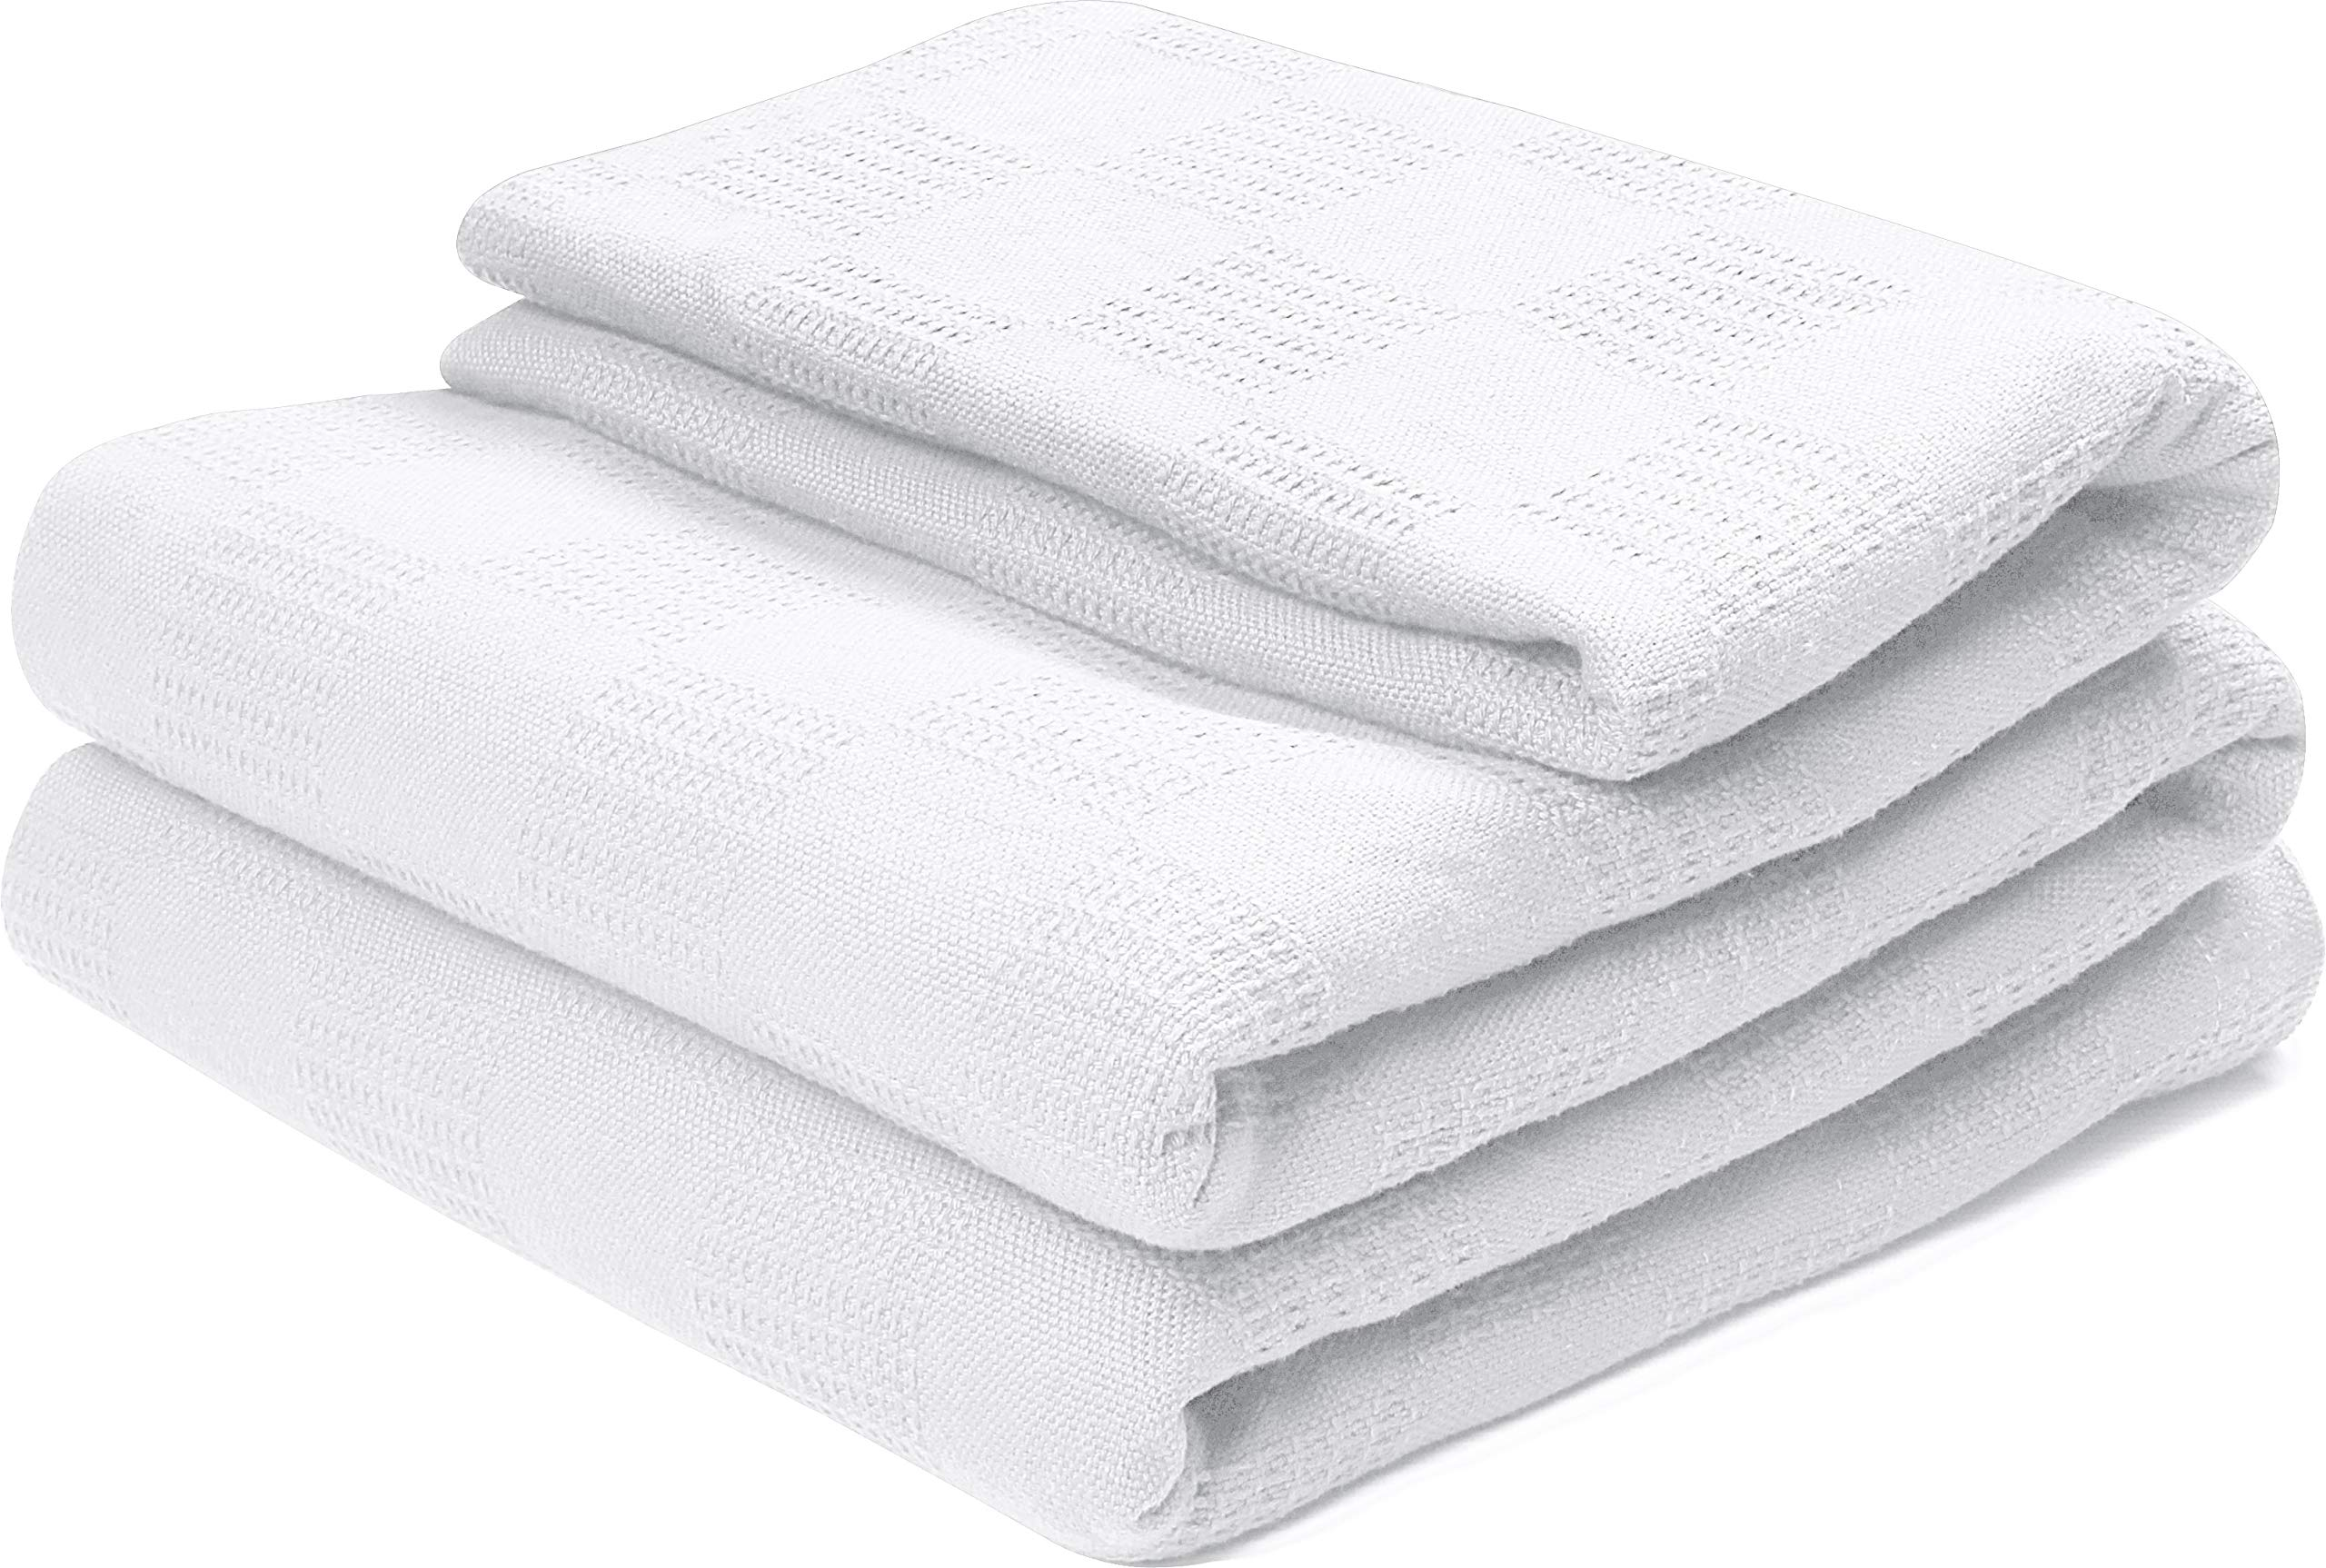 Utopia bedding 100% Premium Woven Cotton Blanket (King, White) Breathable Cotton Throw Blanket and Quilt for Bed & Couch/Sofa